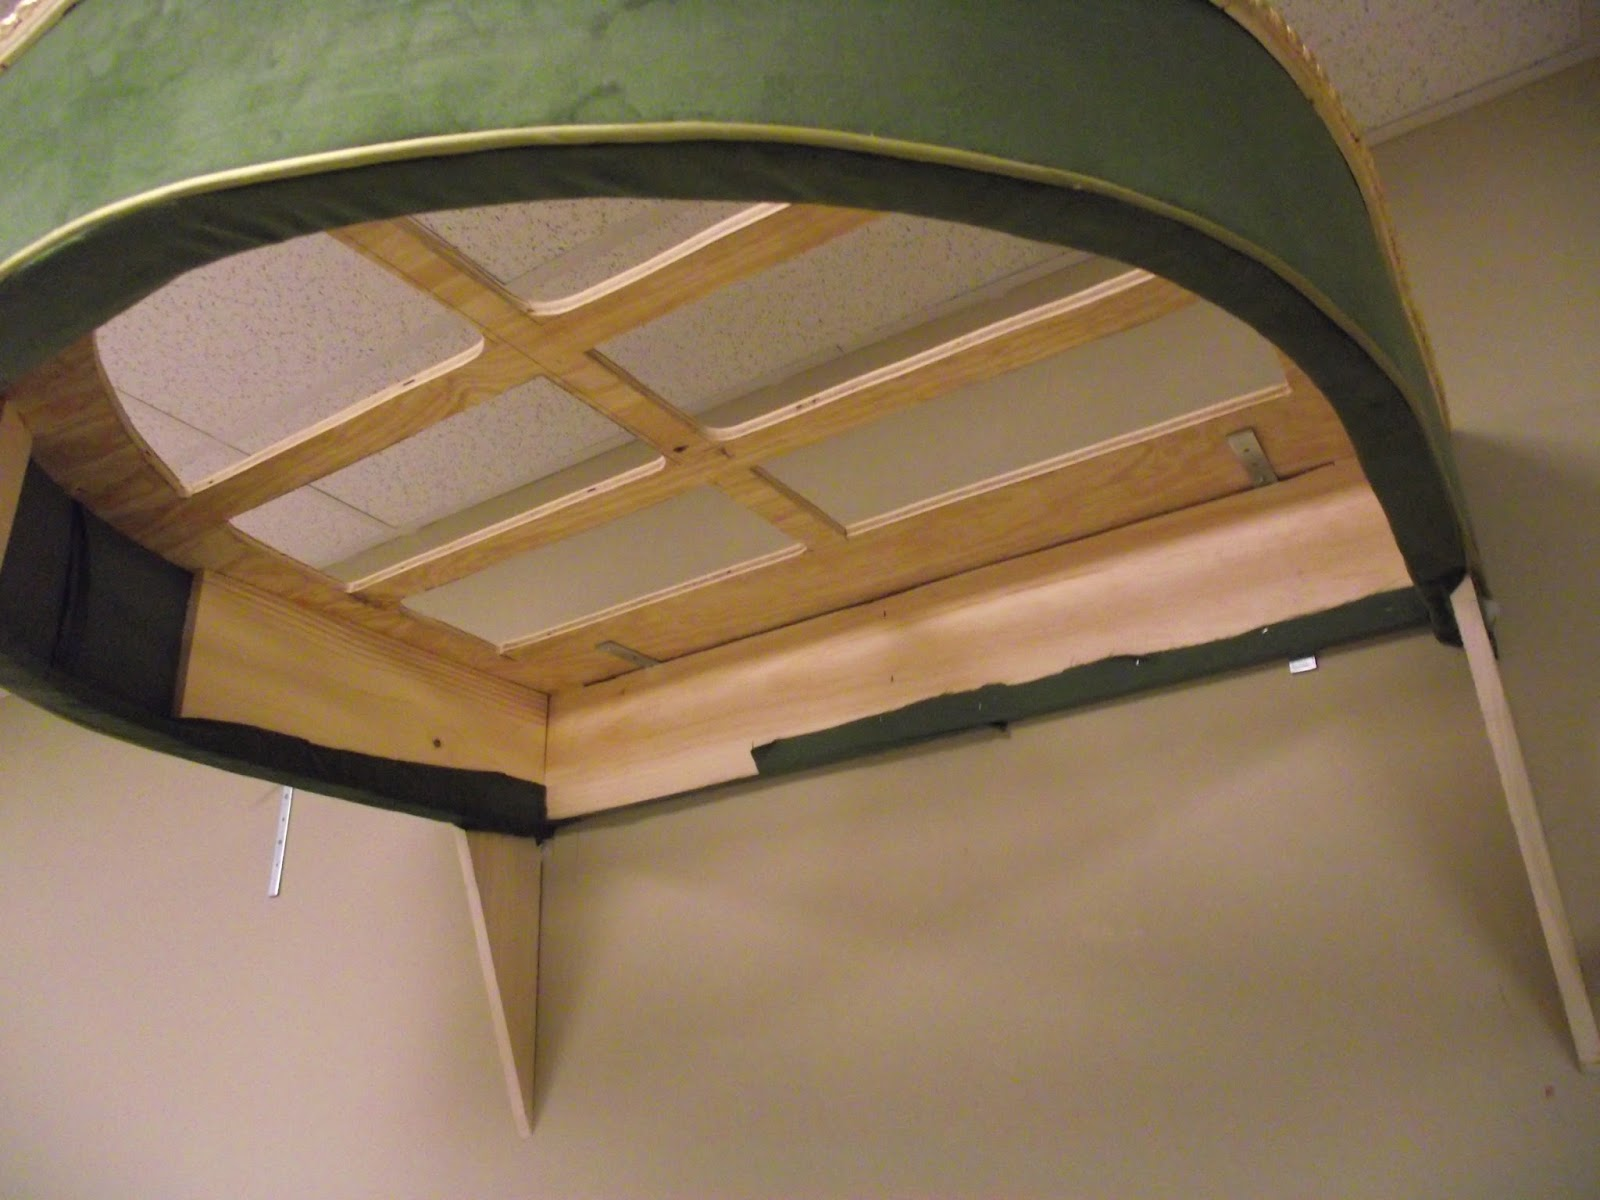 the canopy had to be mounted 11 feet high to give the room much needed drama and a focal point